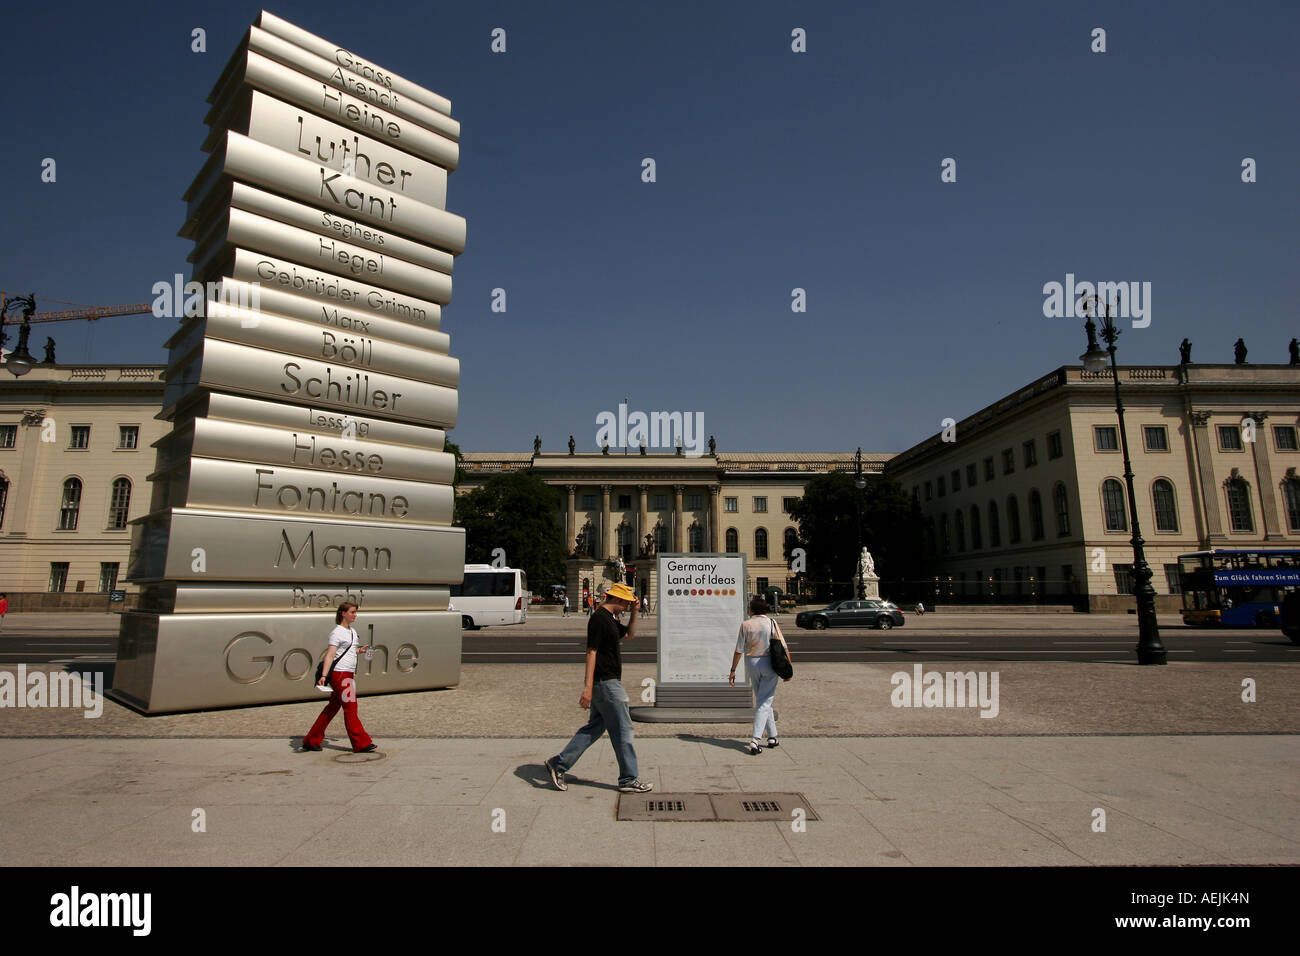 Books by german authors in the capital Berlin Germany - Stock Image